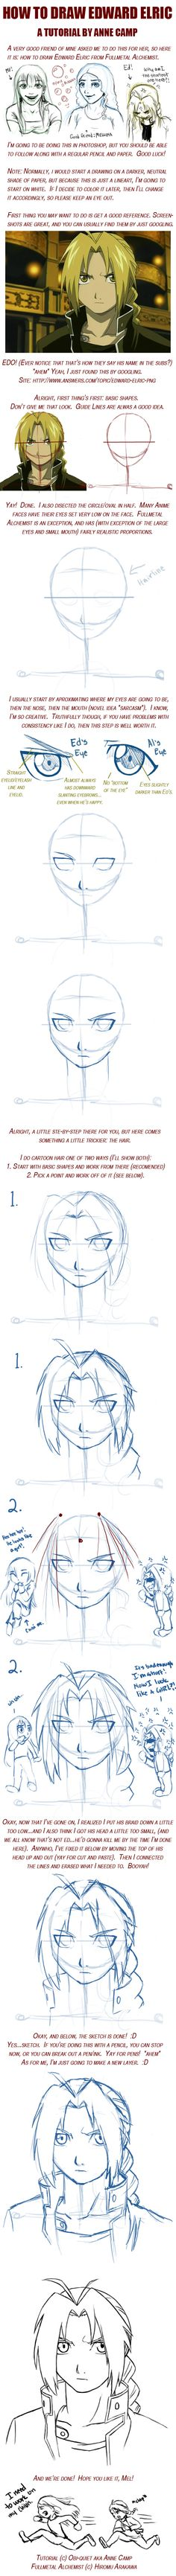 Edward Elric Tutorial by Obi-quiet on DeviantArt